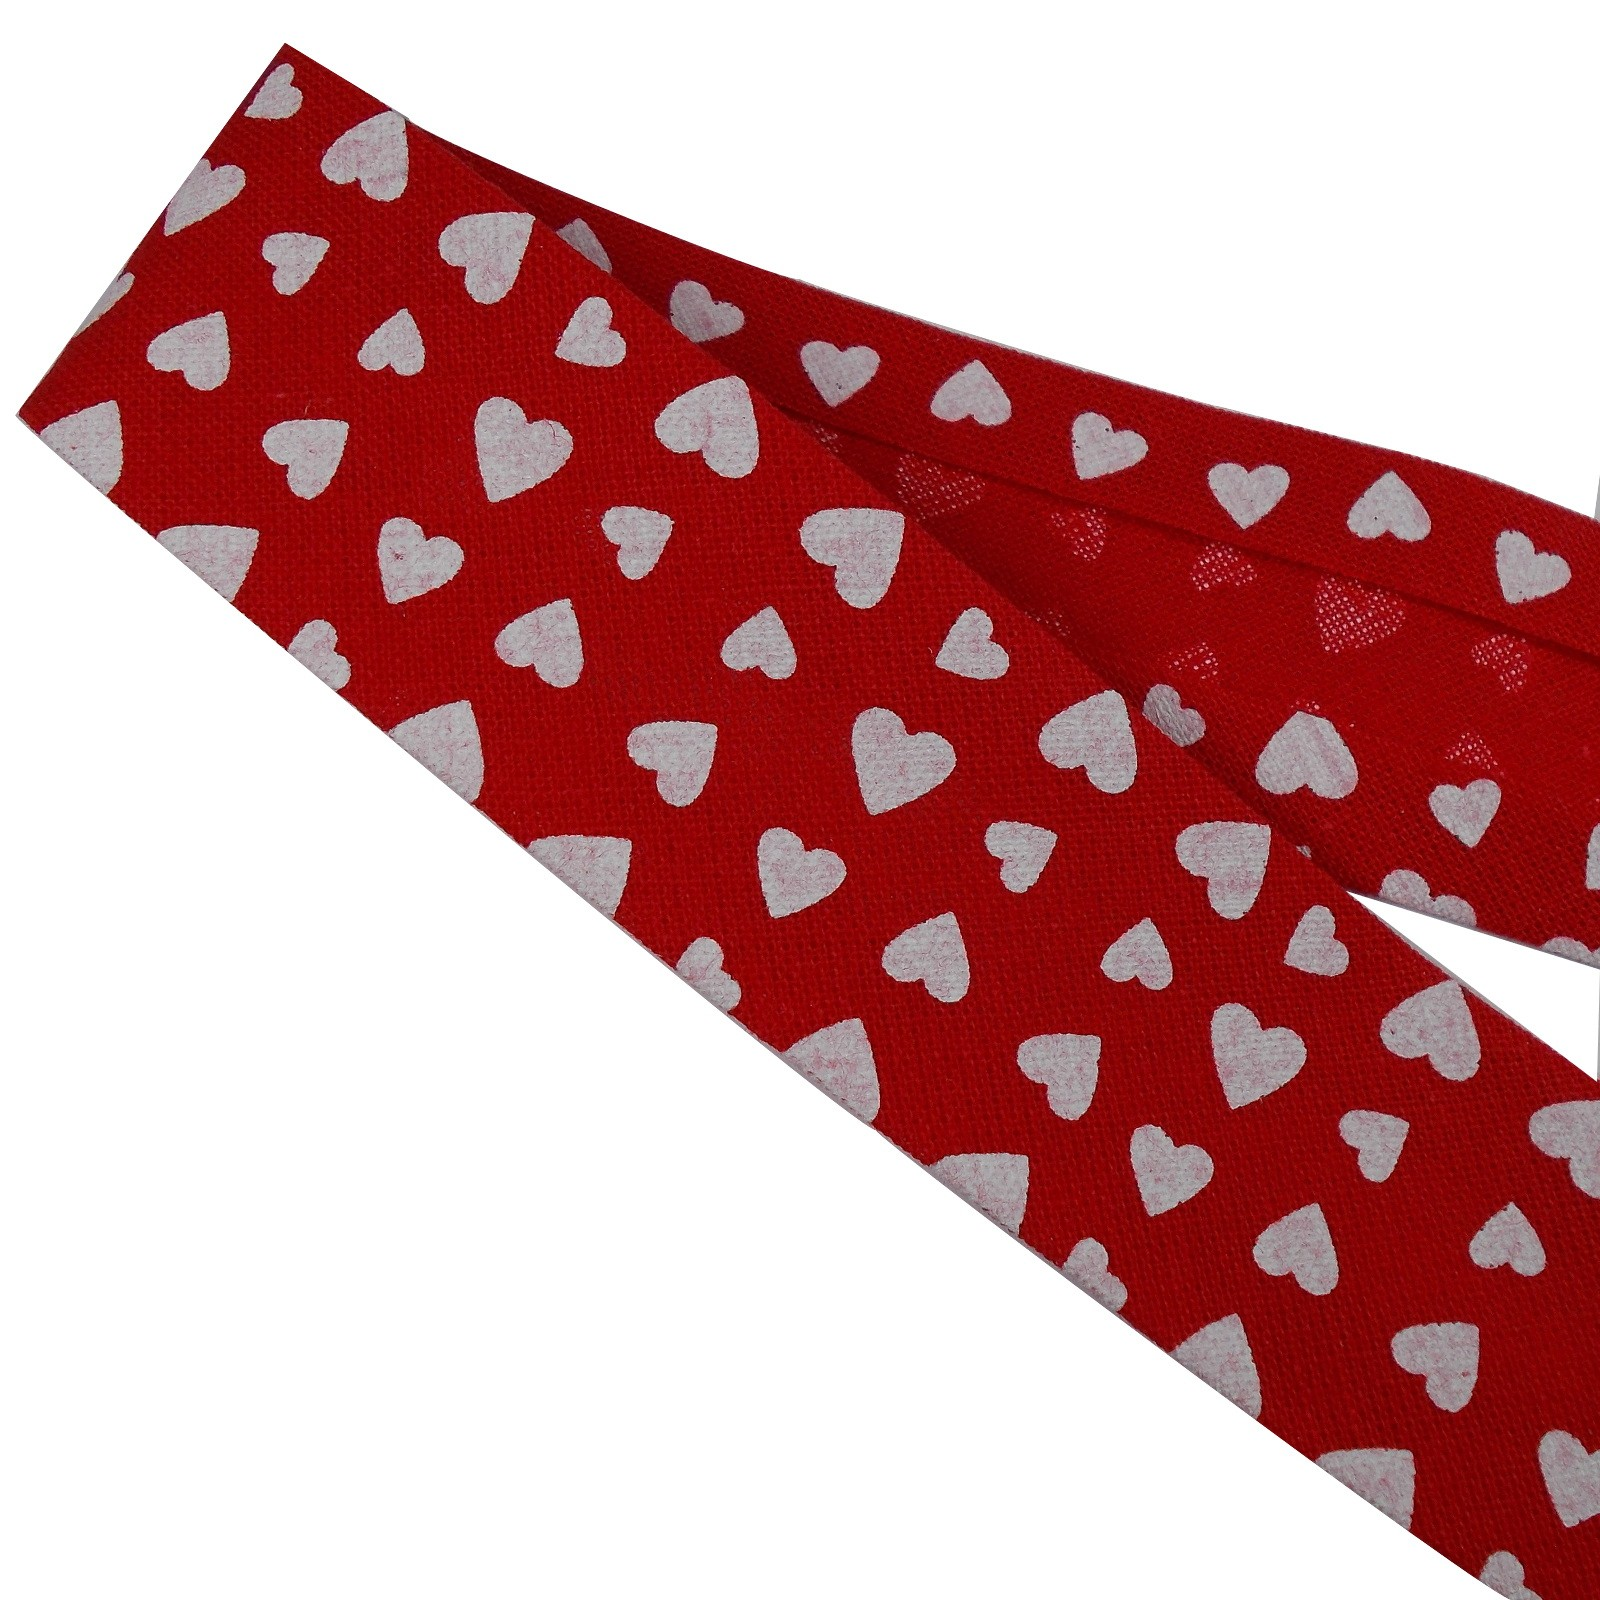 Bias Binding Patterned Cotton 25mm Red with White Hearts 3 metre length